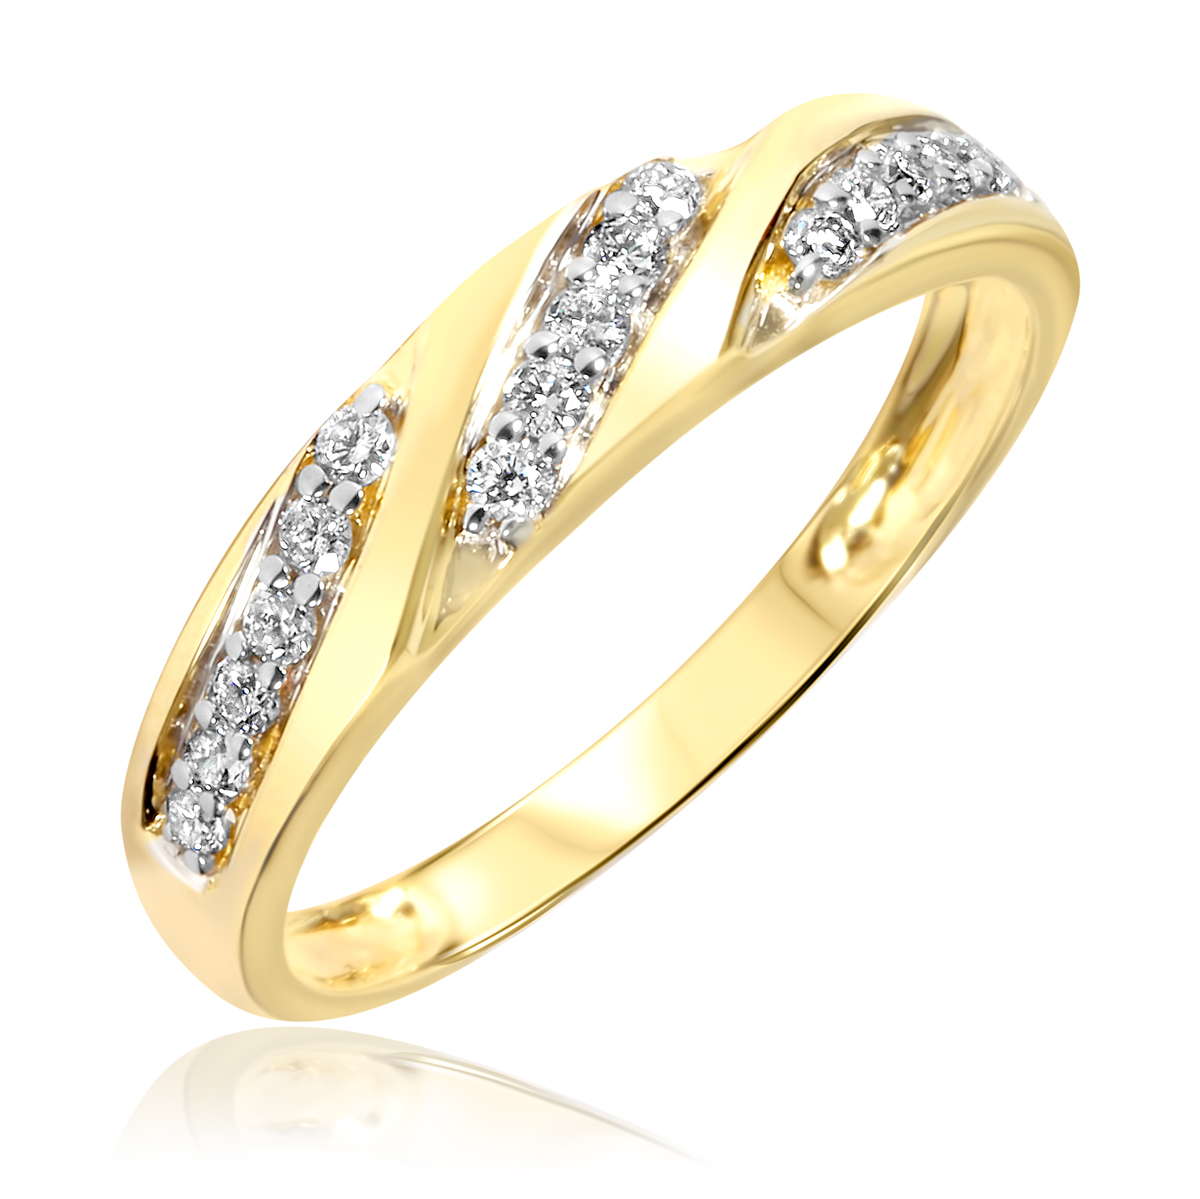 1 4 carat tw diamond women39s wedding ring 14k yellow for Wedding gold rings for women